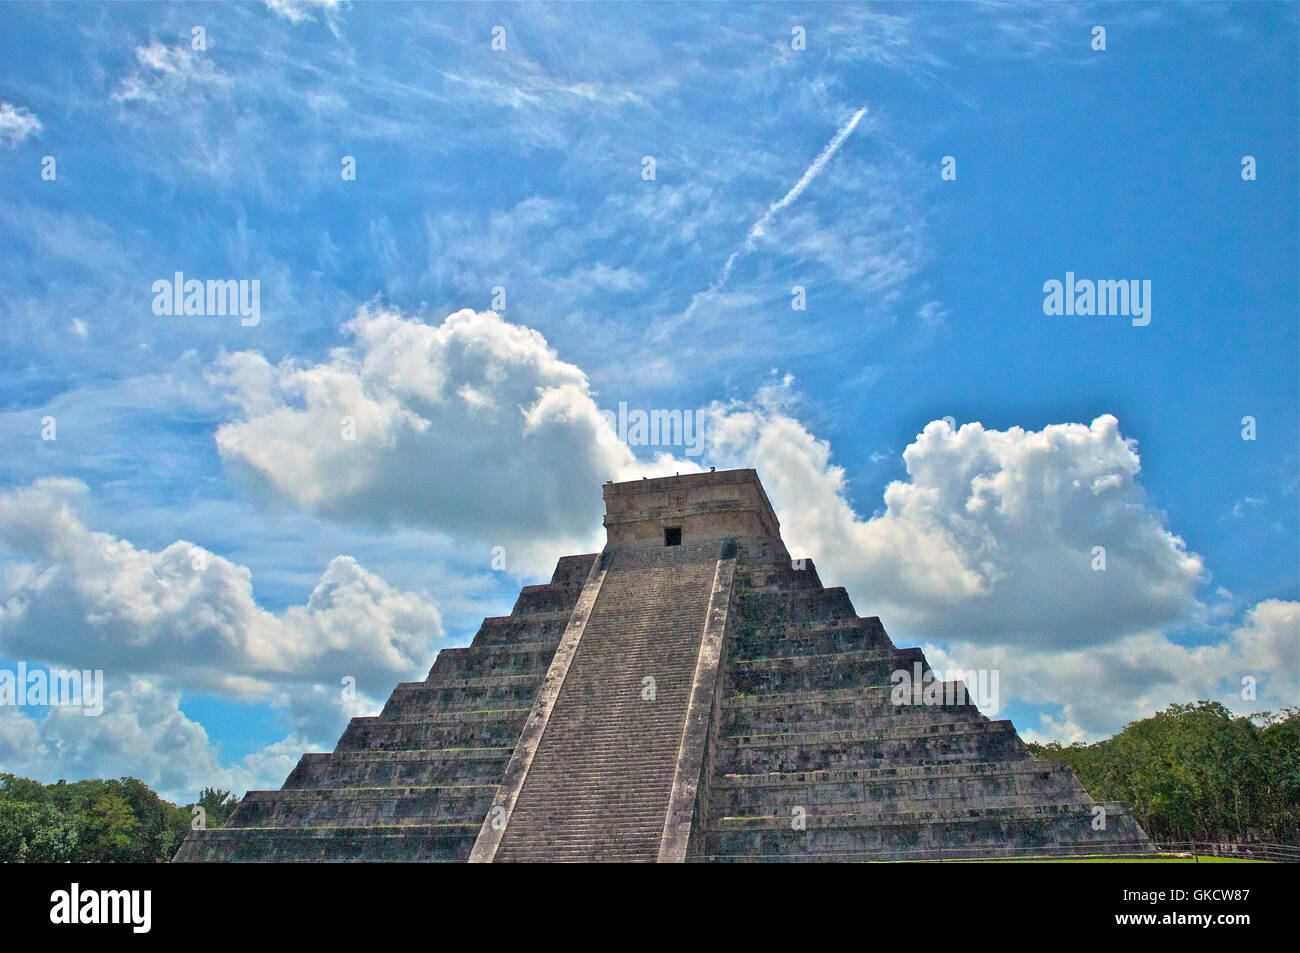 Dramatic Angled Front Facade of Chichen Itza with Clear Blue Sky, Tinúm Municipality, Yucatán State, Mexico. - Stock Image